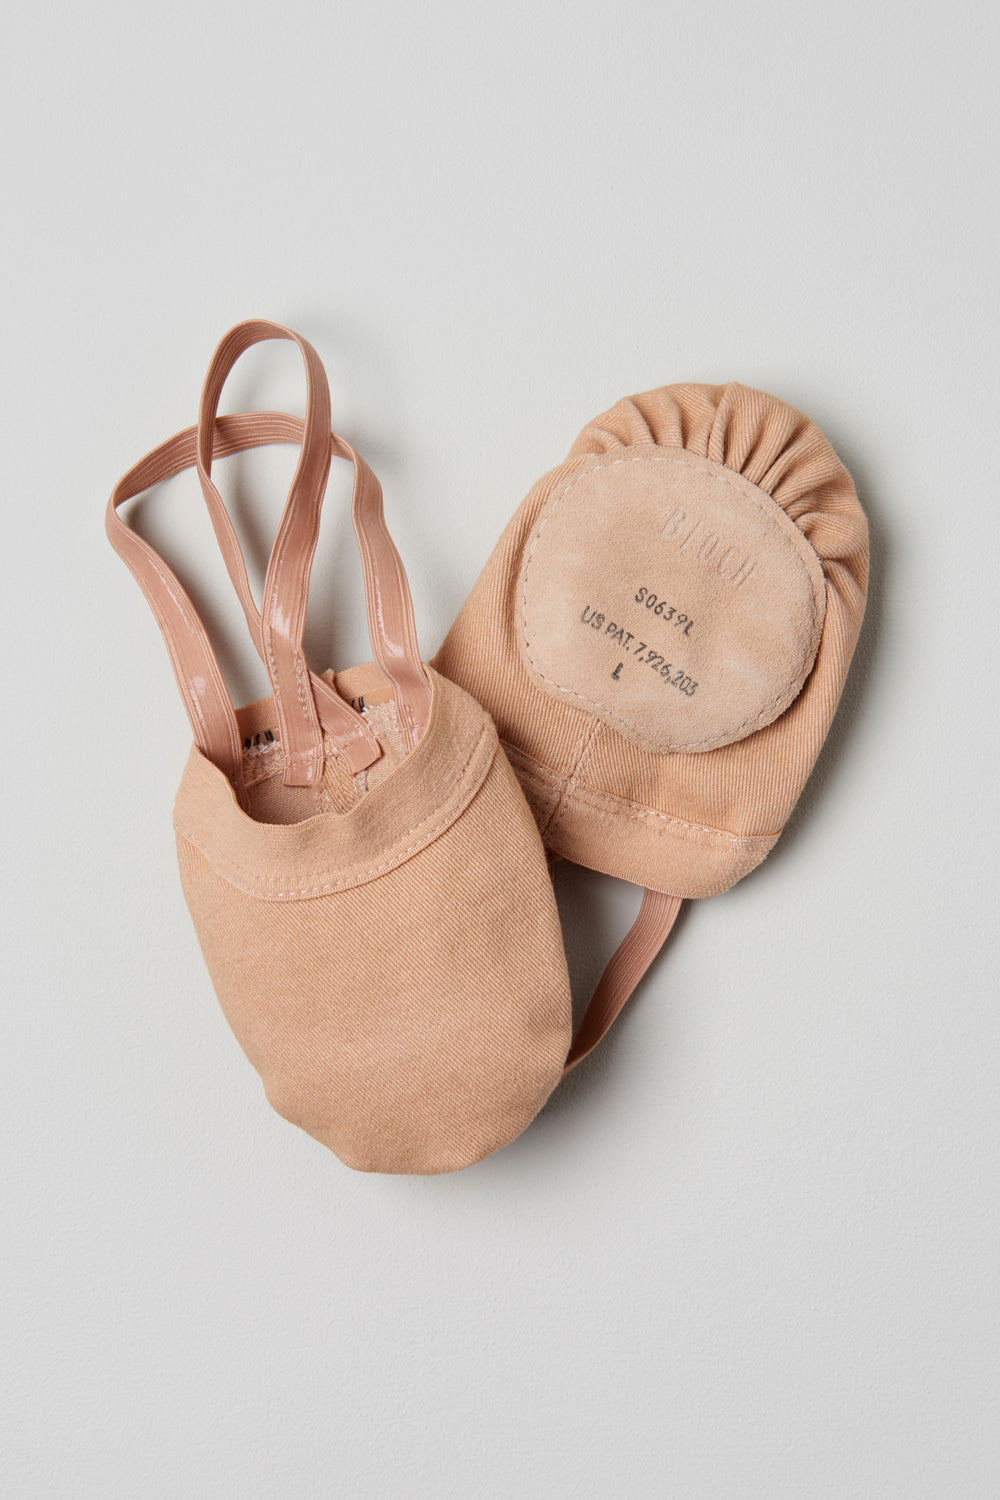 Ladies Spin 2 Half Sole Shoes - BLOCH US